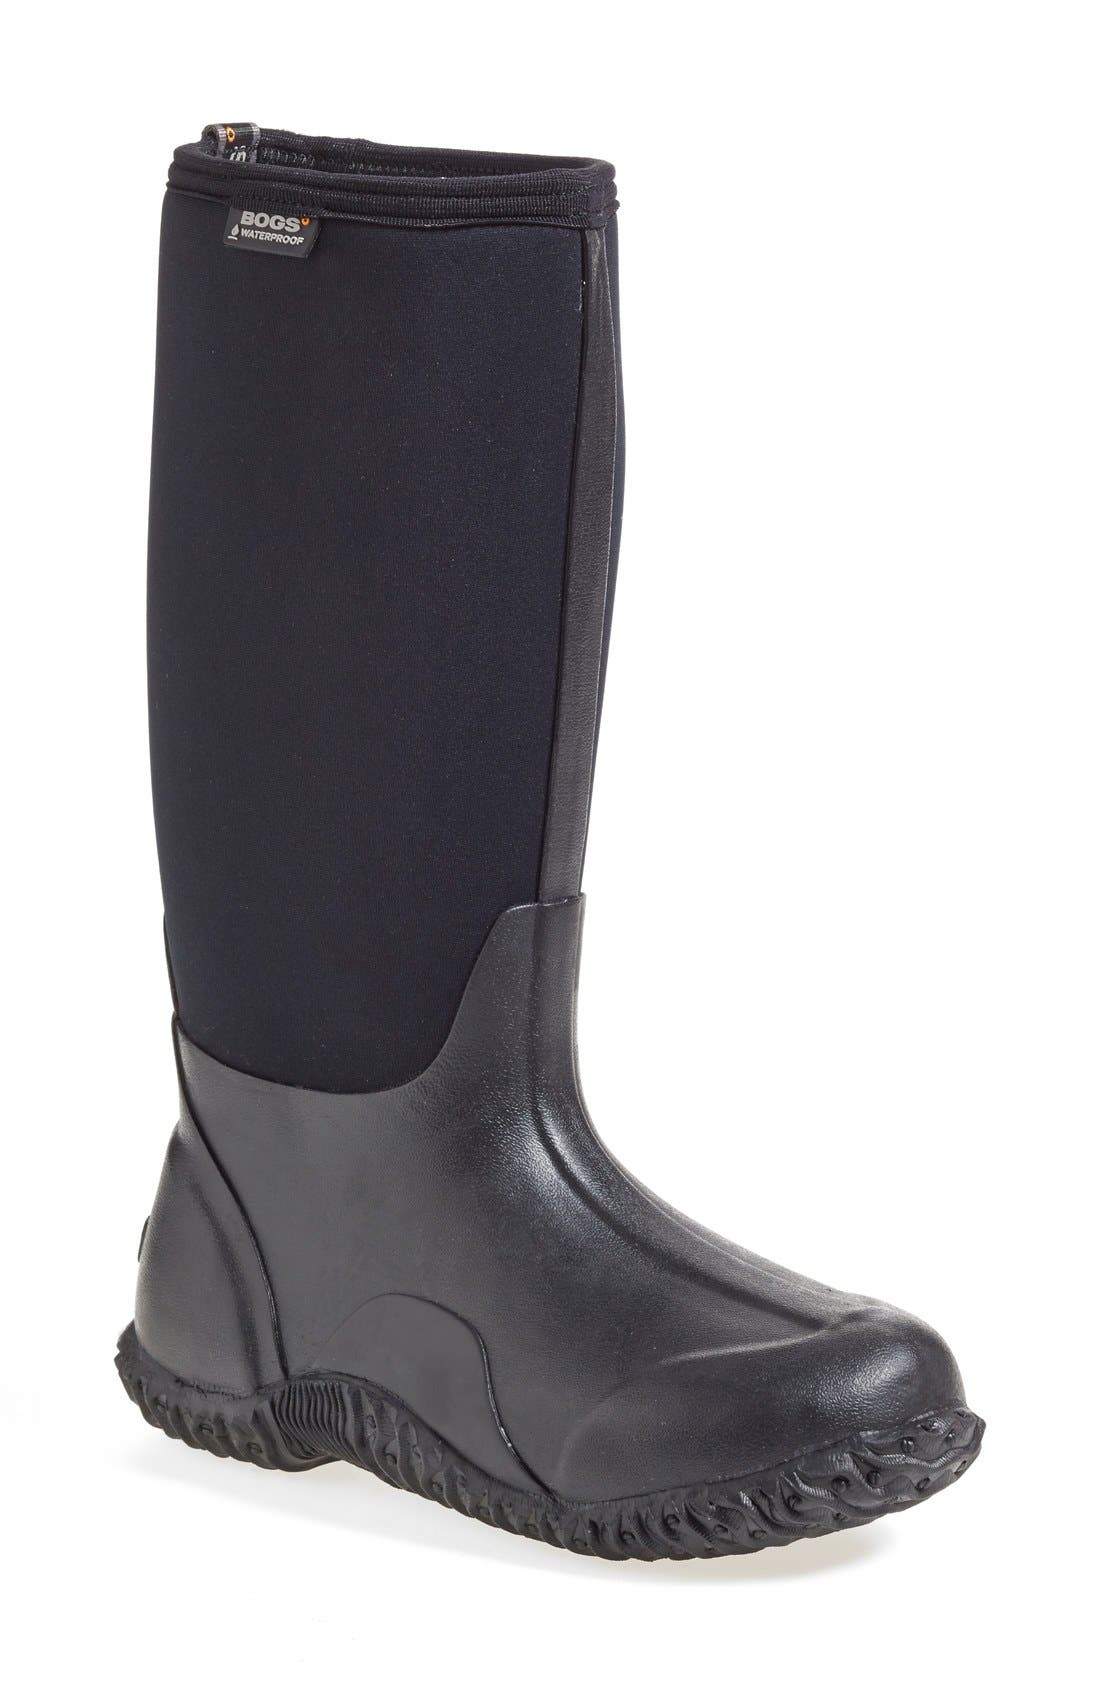 BOGS Classic High Waterproof Snow Boot